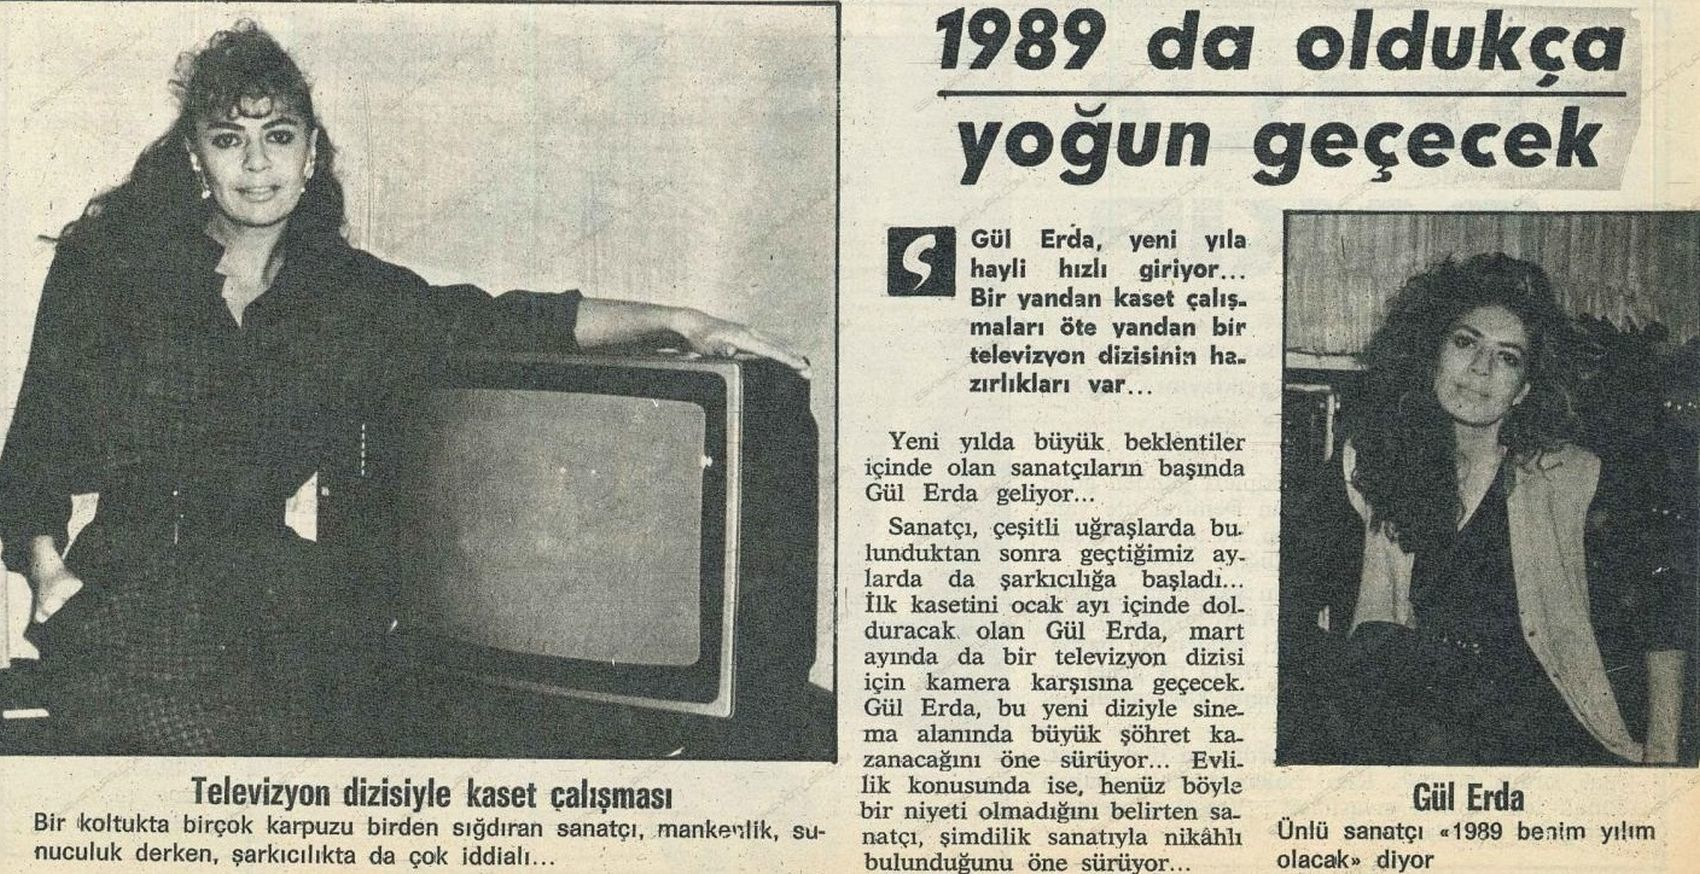 0346-gul-erda-1989-video-kaset-ses-dergisi